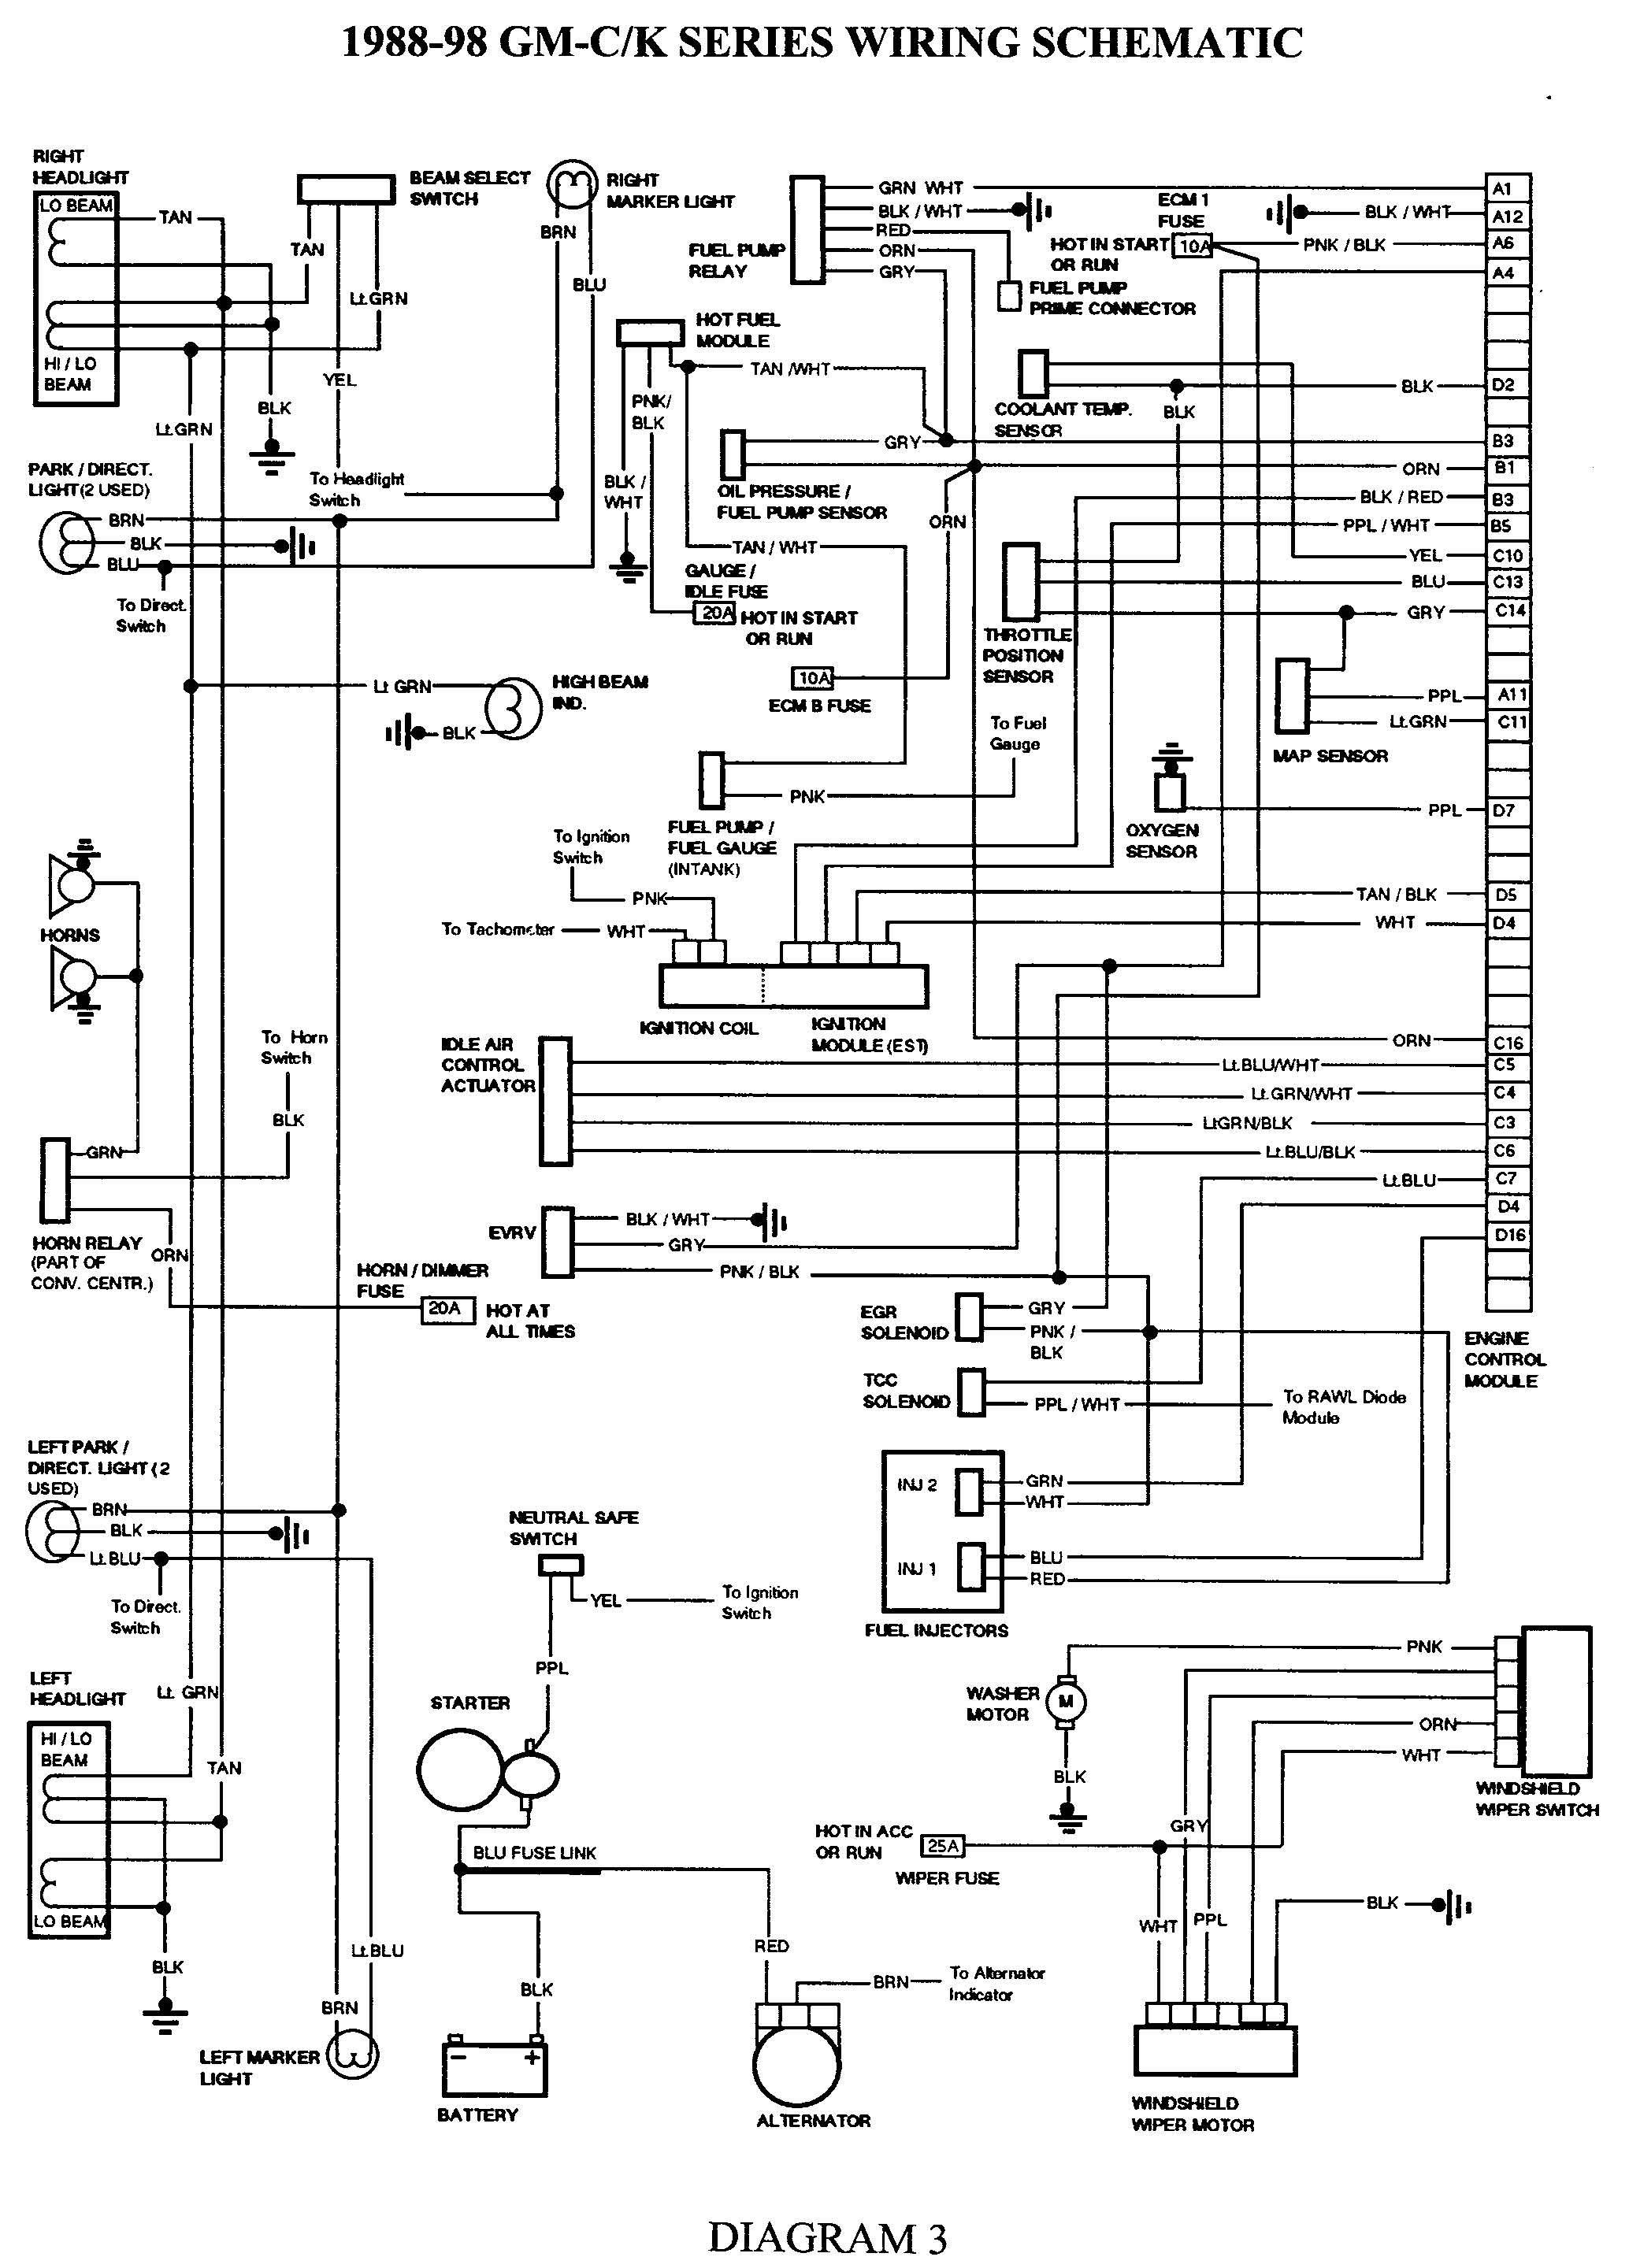 Wiring Diagram - bookingritzcarlton.info | Electrical diagram, Electrical  wiring diagram, Chevy 1500 | Battery For 2007 Chevy Silverado Wiring Diagram |  | Pinterest